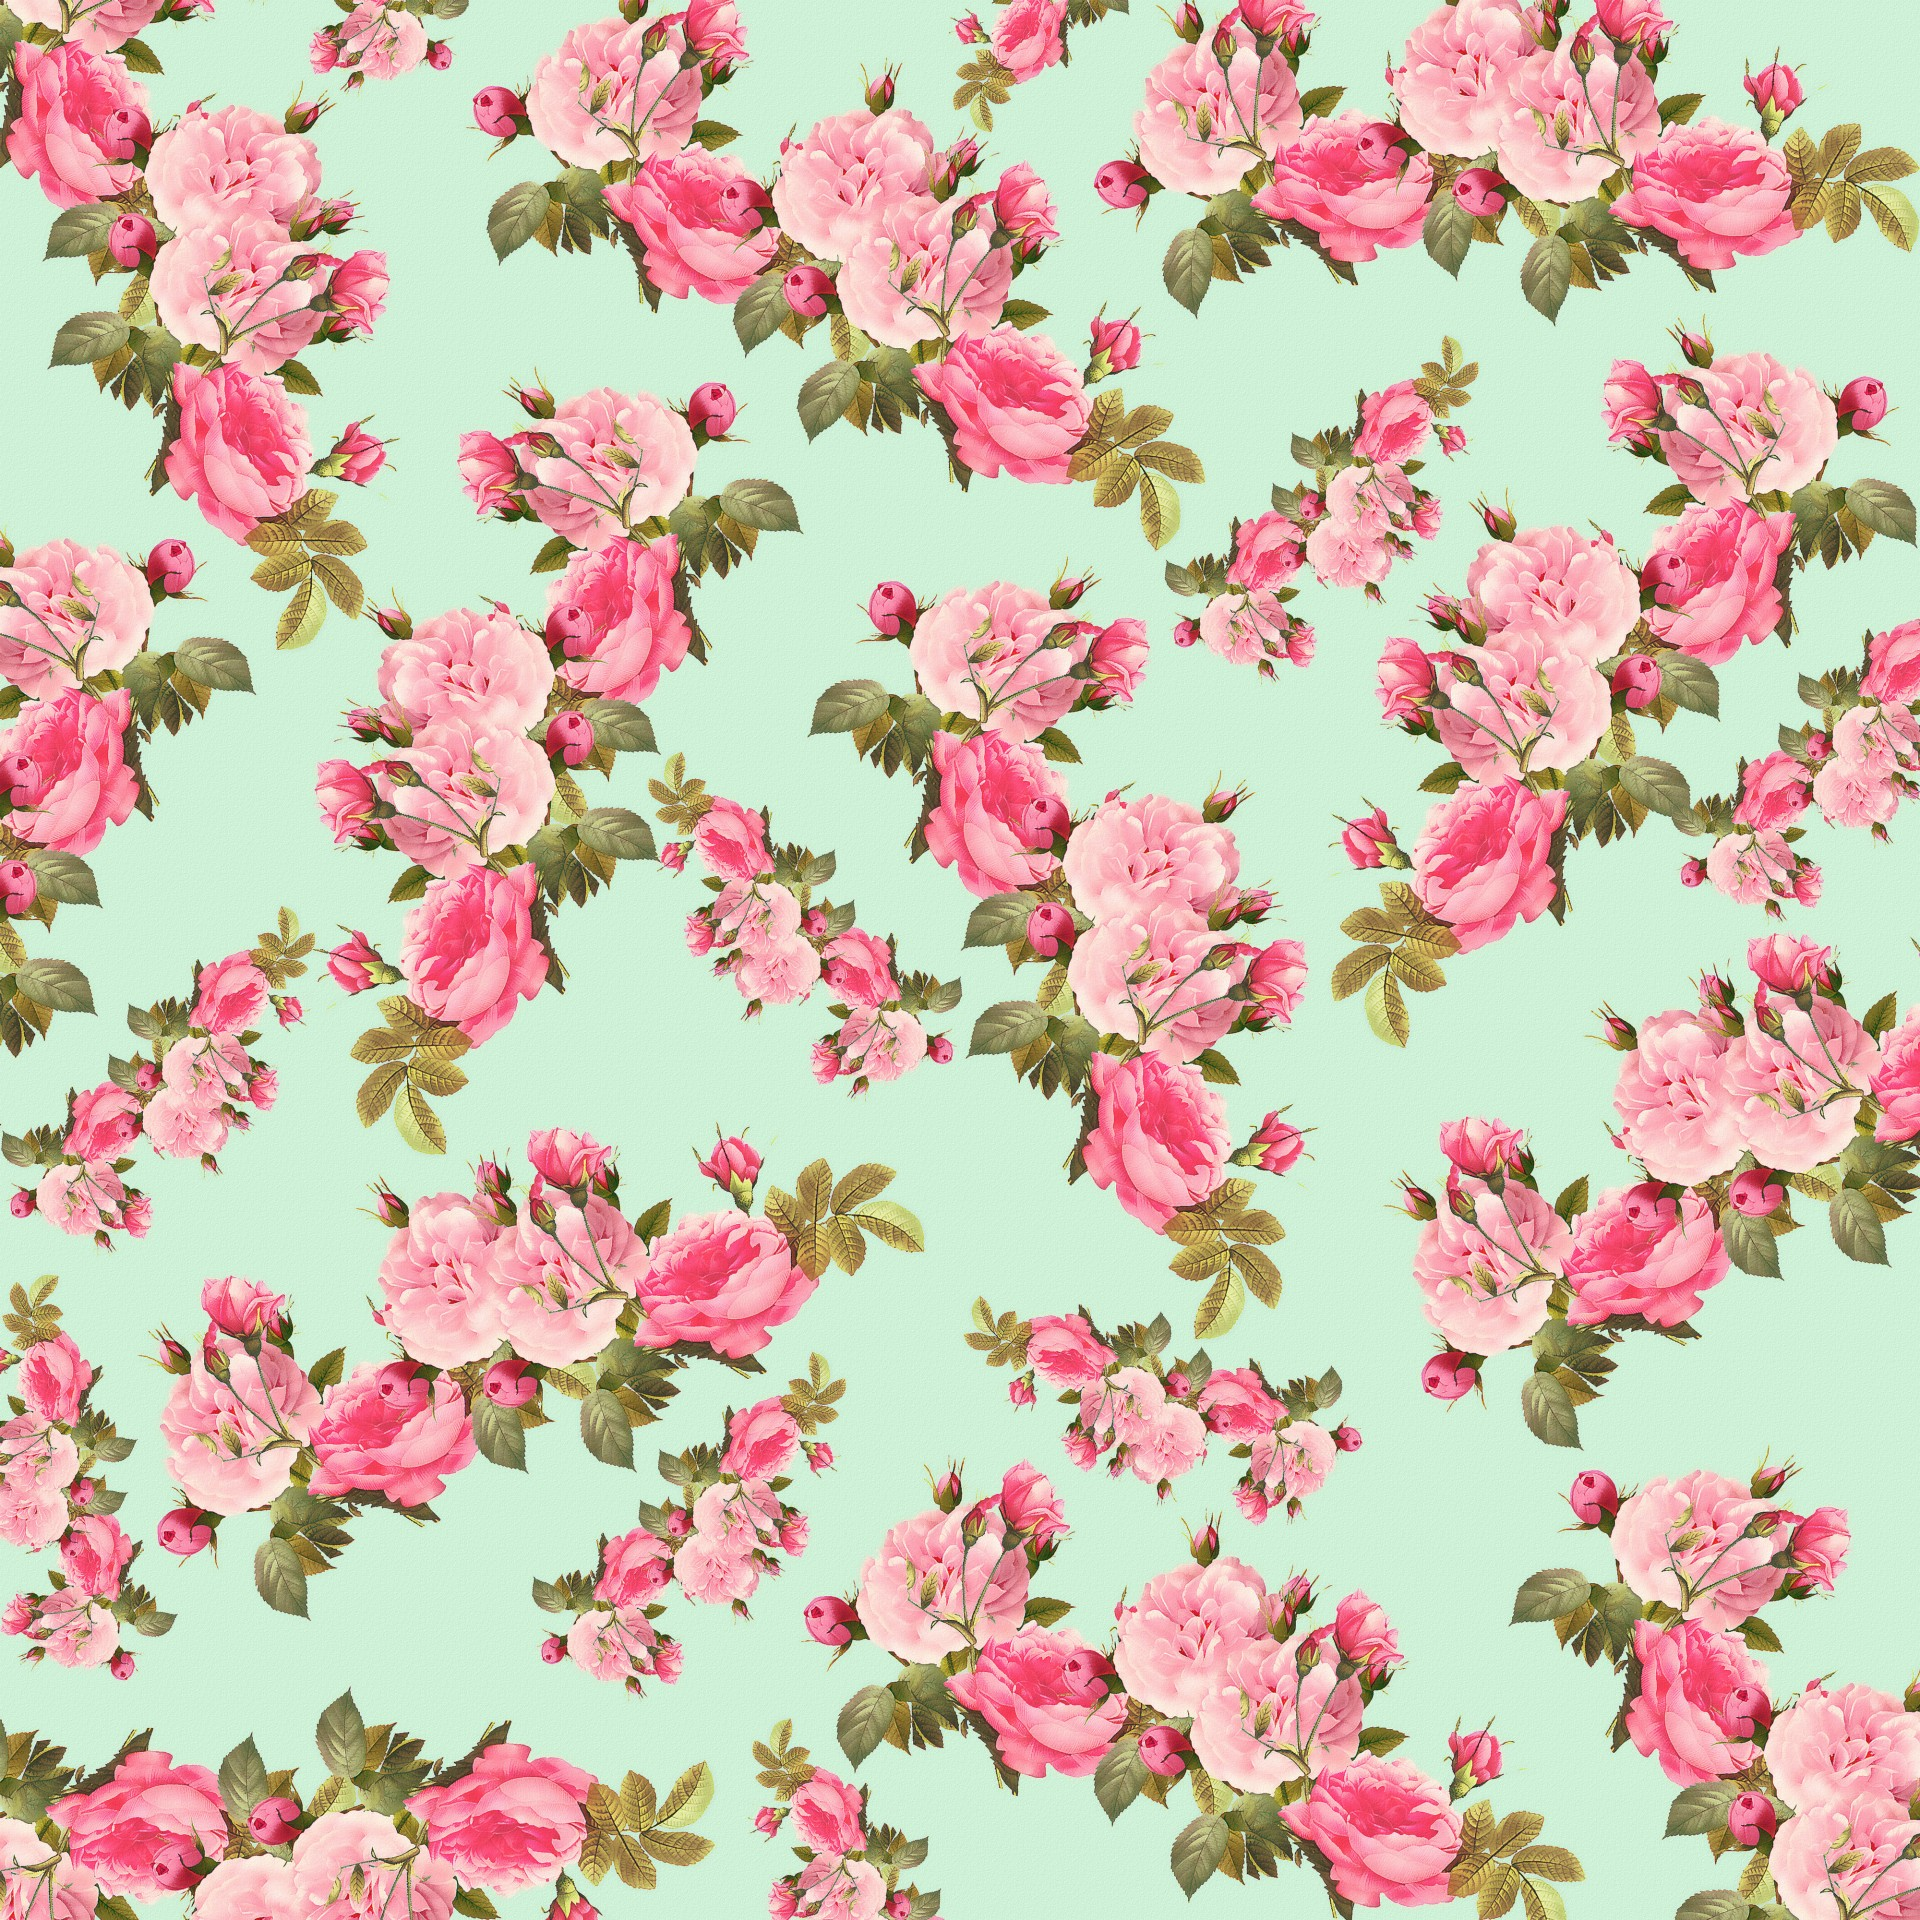 Vintage Roses Floral Background Free Stock Photo - Public Domain ...